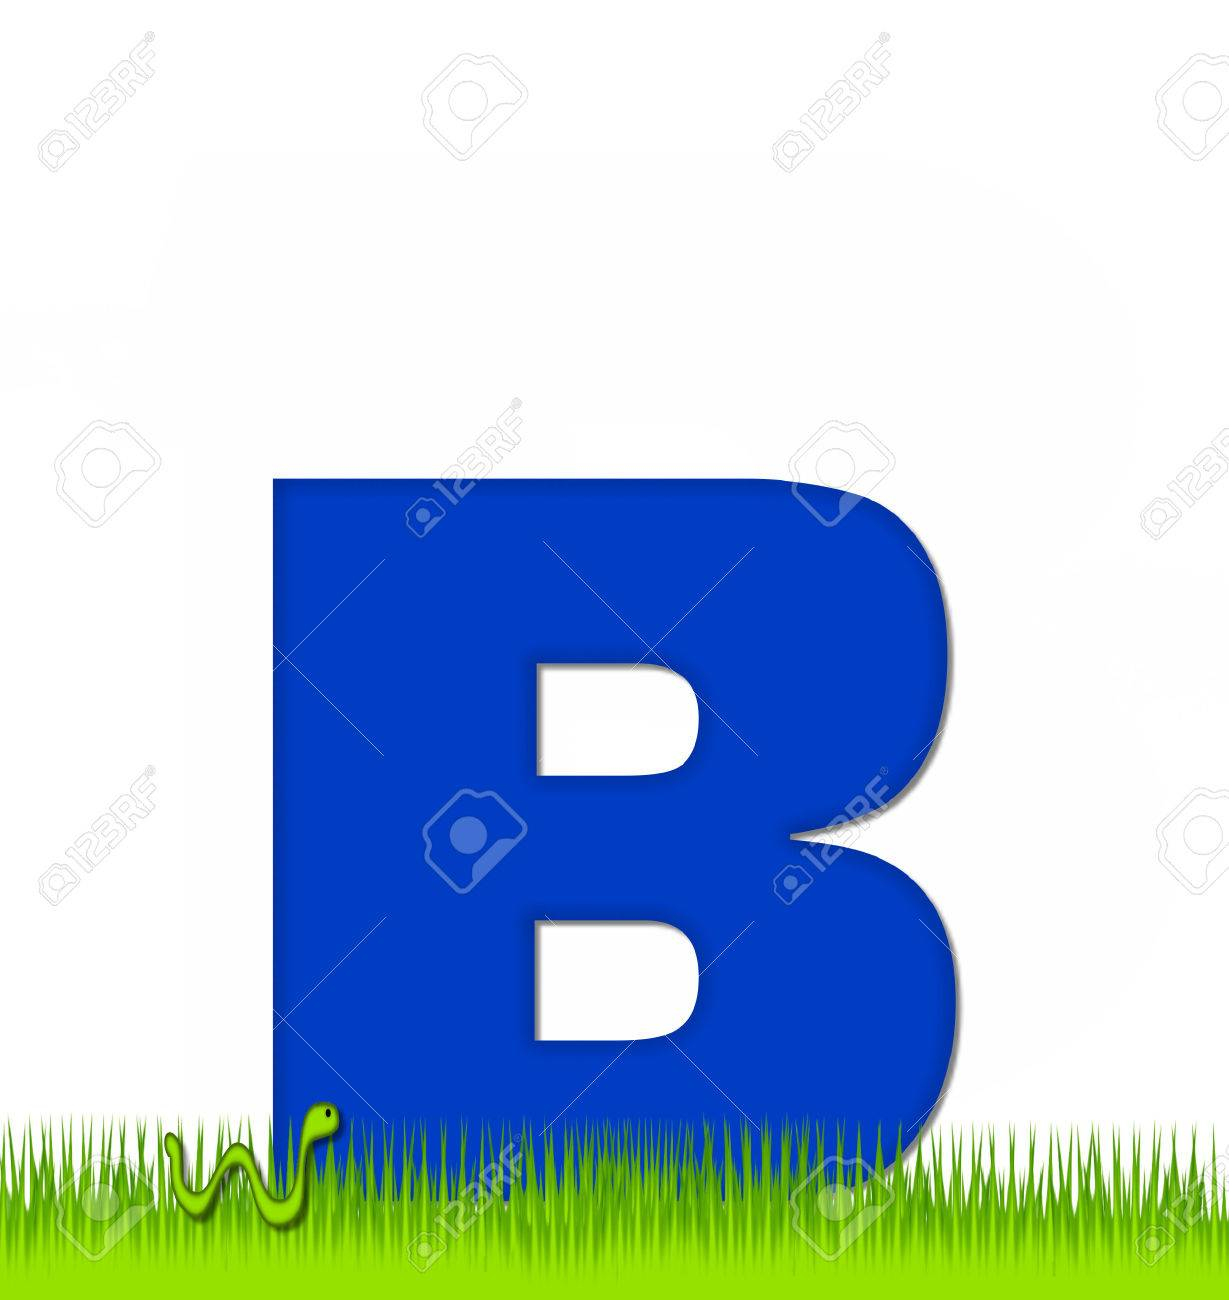 Stock Photo - The letter B, in the alphabet set